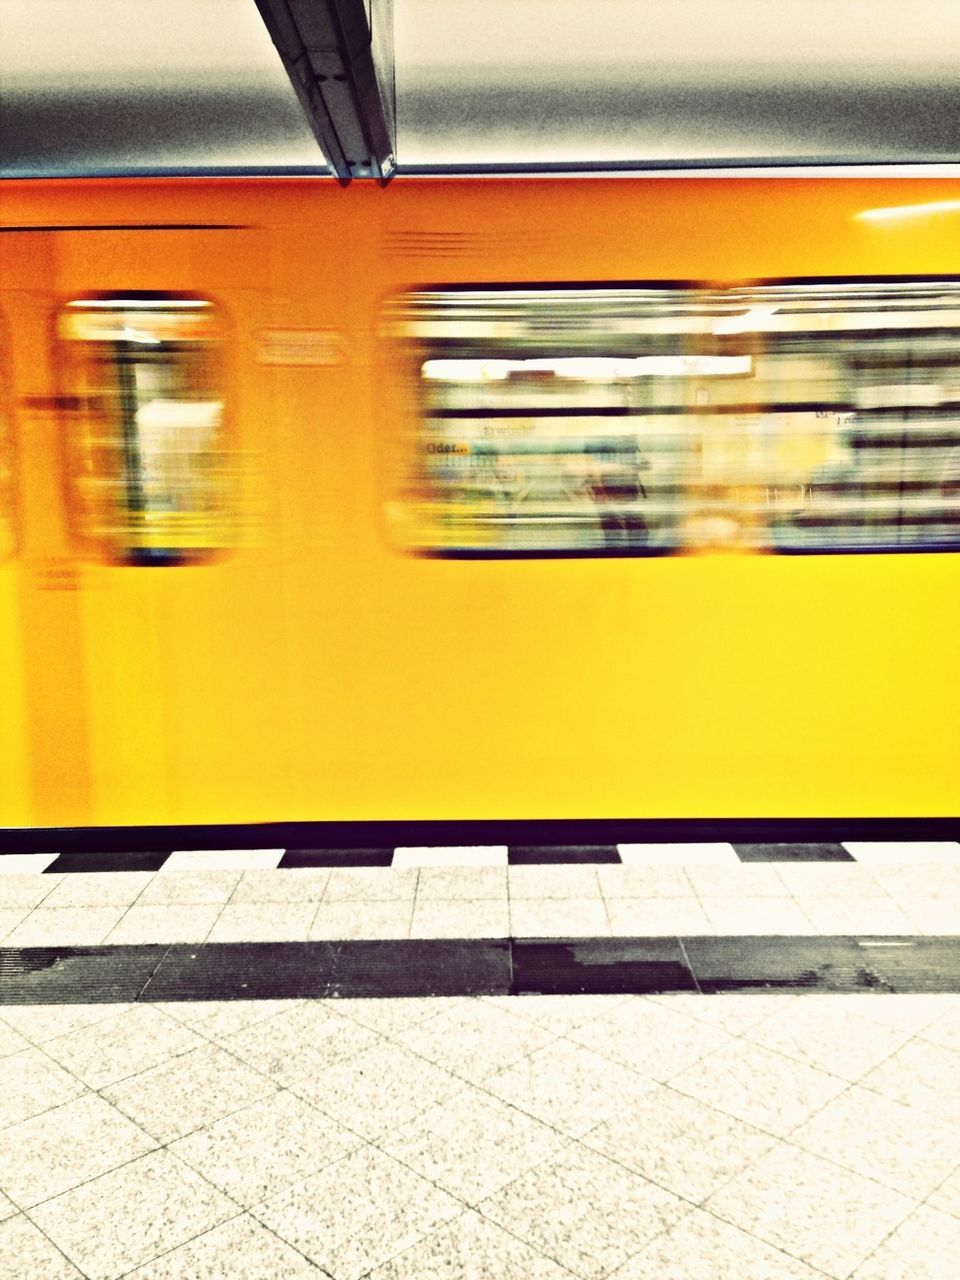 transportation, train - vehicle, public transportation, railroad station platform, blurred motion, rail transportation, speed, railroad station, subway train, mode of transport, passenger train, motion, metro train, yellow, indoors, no people, day